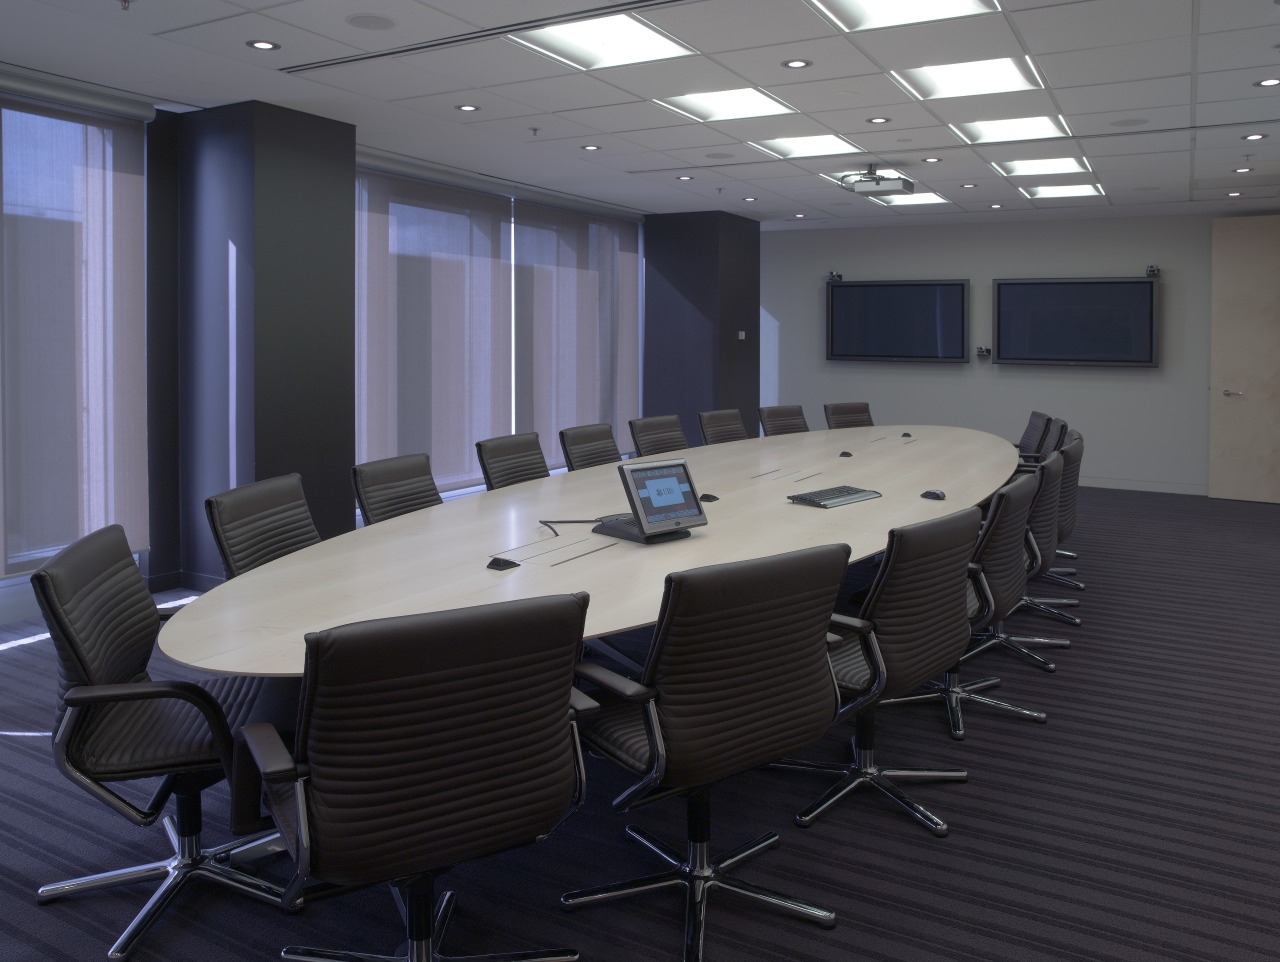 A view of the UBS offices, meetin rooms conference hall, furniture, interior design, office, table, black, gray